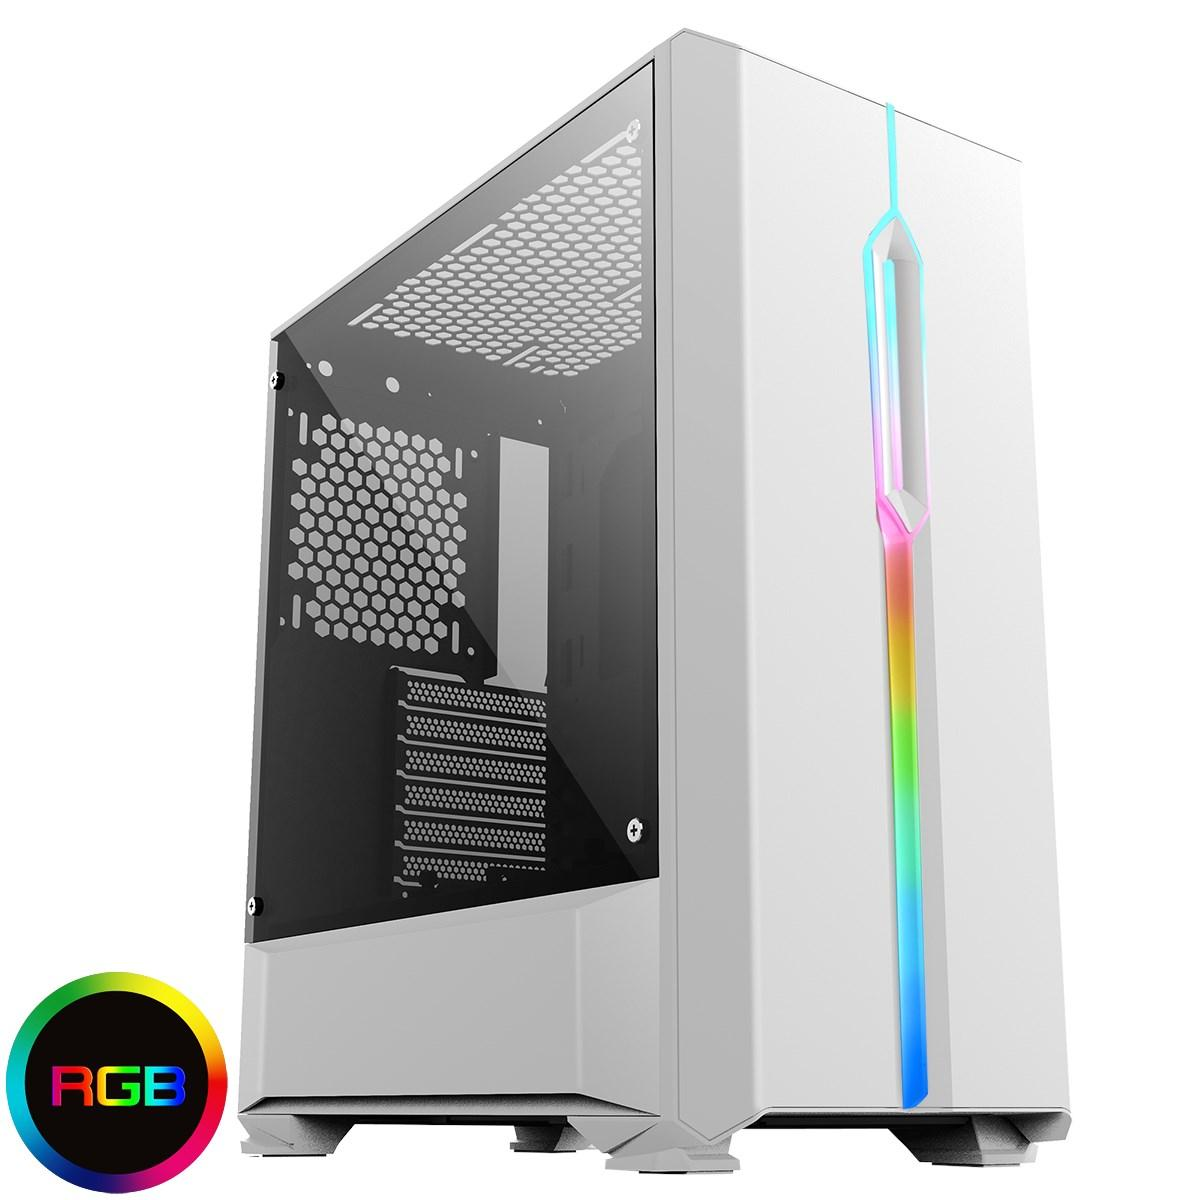 WM Arctic  - INTEL I5 9600K 6 CORE | RTX 2070 Gaming PC